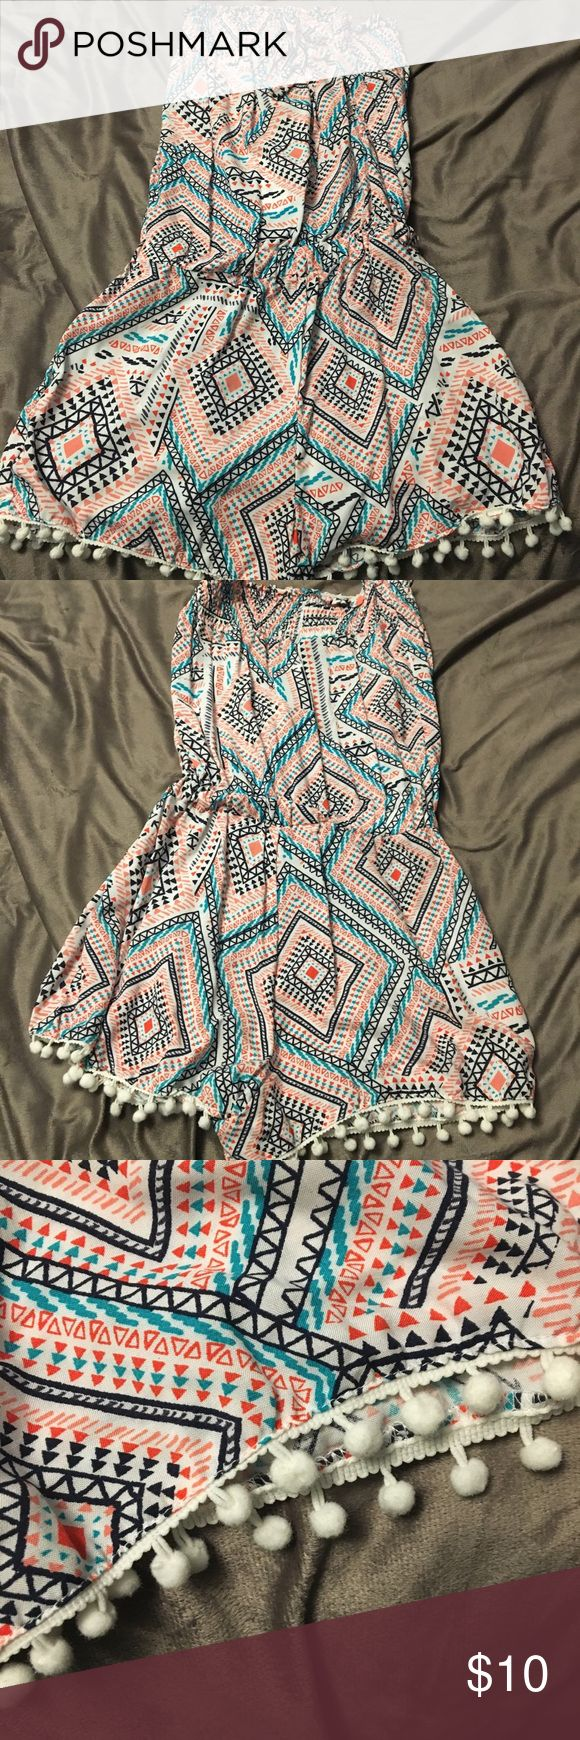 Rue 21 sleeveless romper Sleeveless romper with an Aztec design! Cute white balls on the bottom, has a tie at the top that you could tie around your neck! Rue 21 Dresses